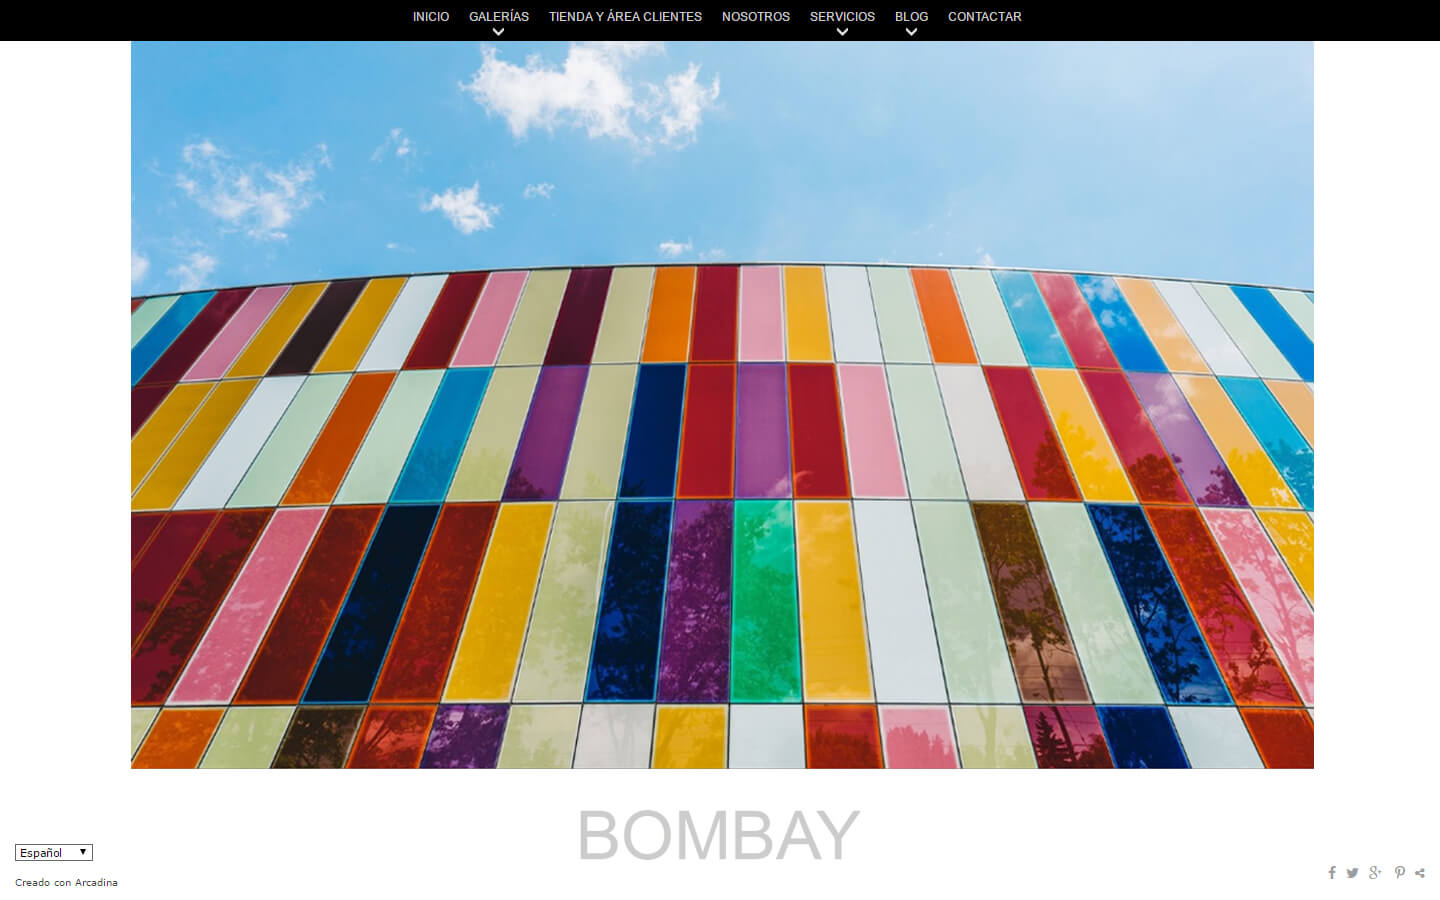 Photographers website. Design: Bombay